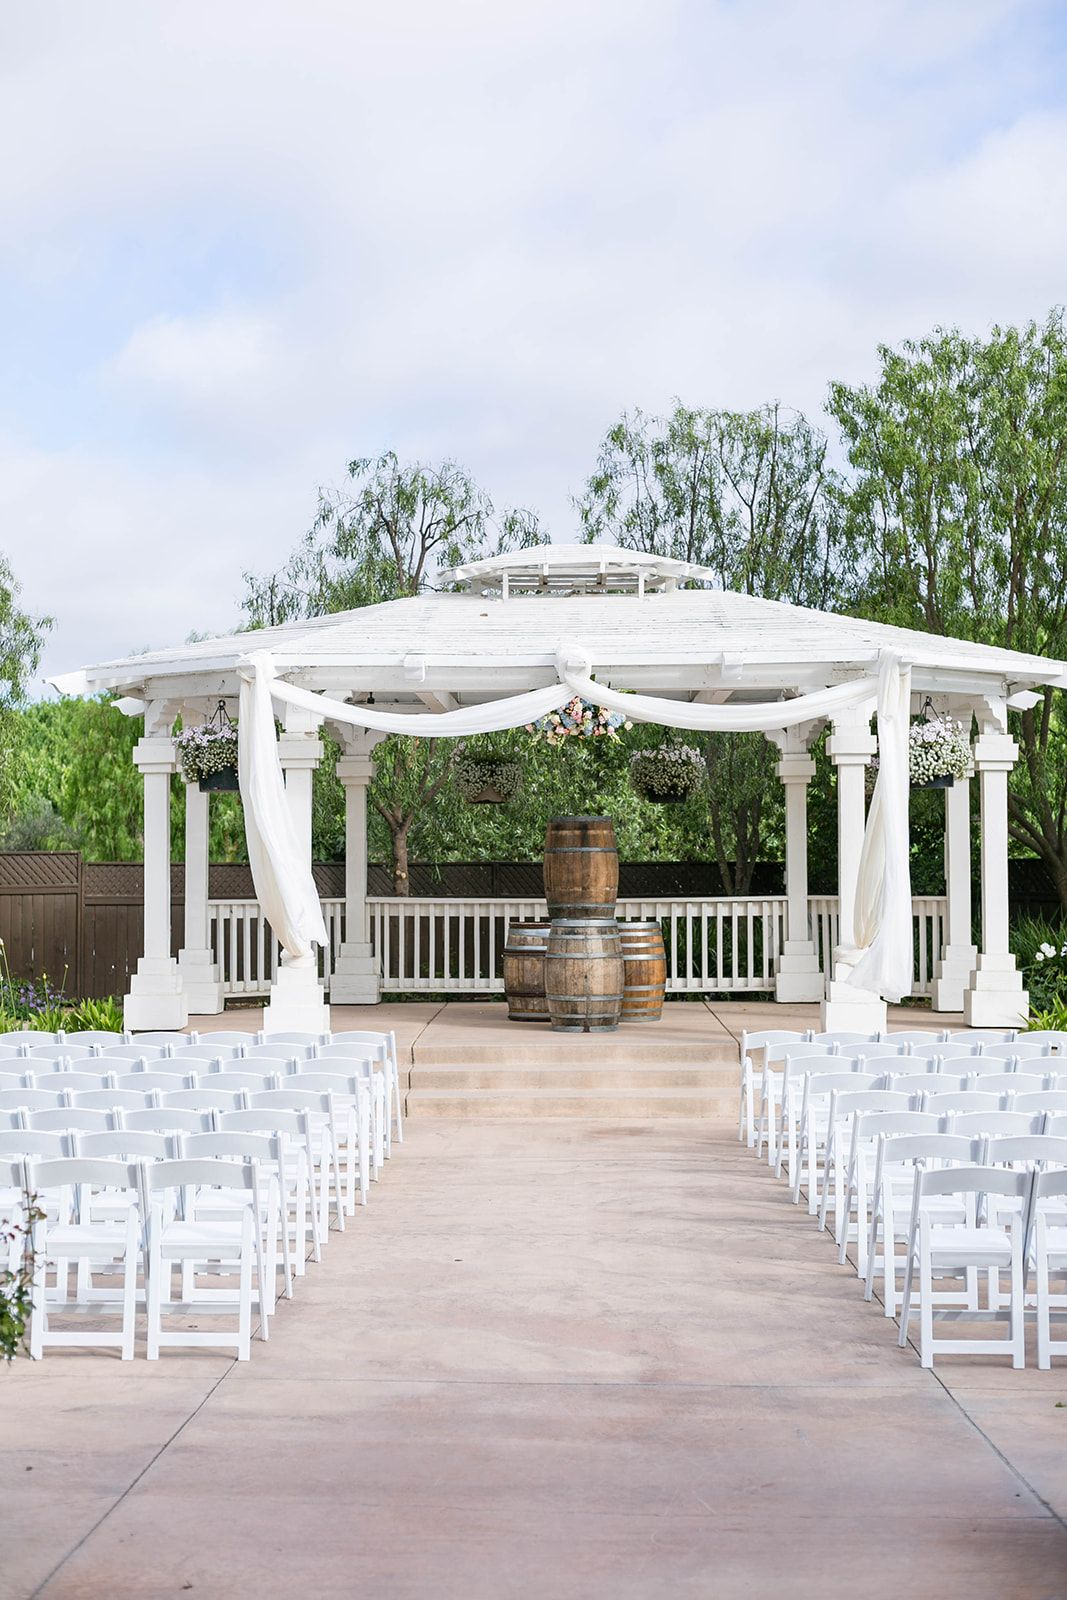 Ceremony Site Wilson Creek Winery Wedding Venue In Temecula Ca Leah Marie Photography Outdoor Wedding Venues Winery Wedding Venue Temecula Weddings